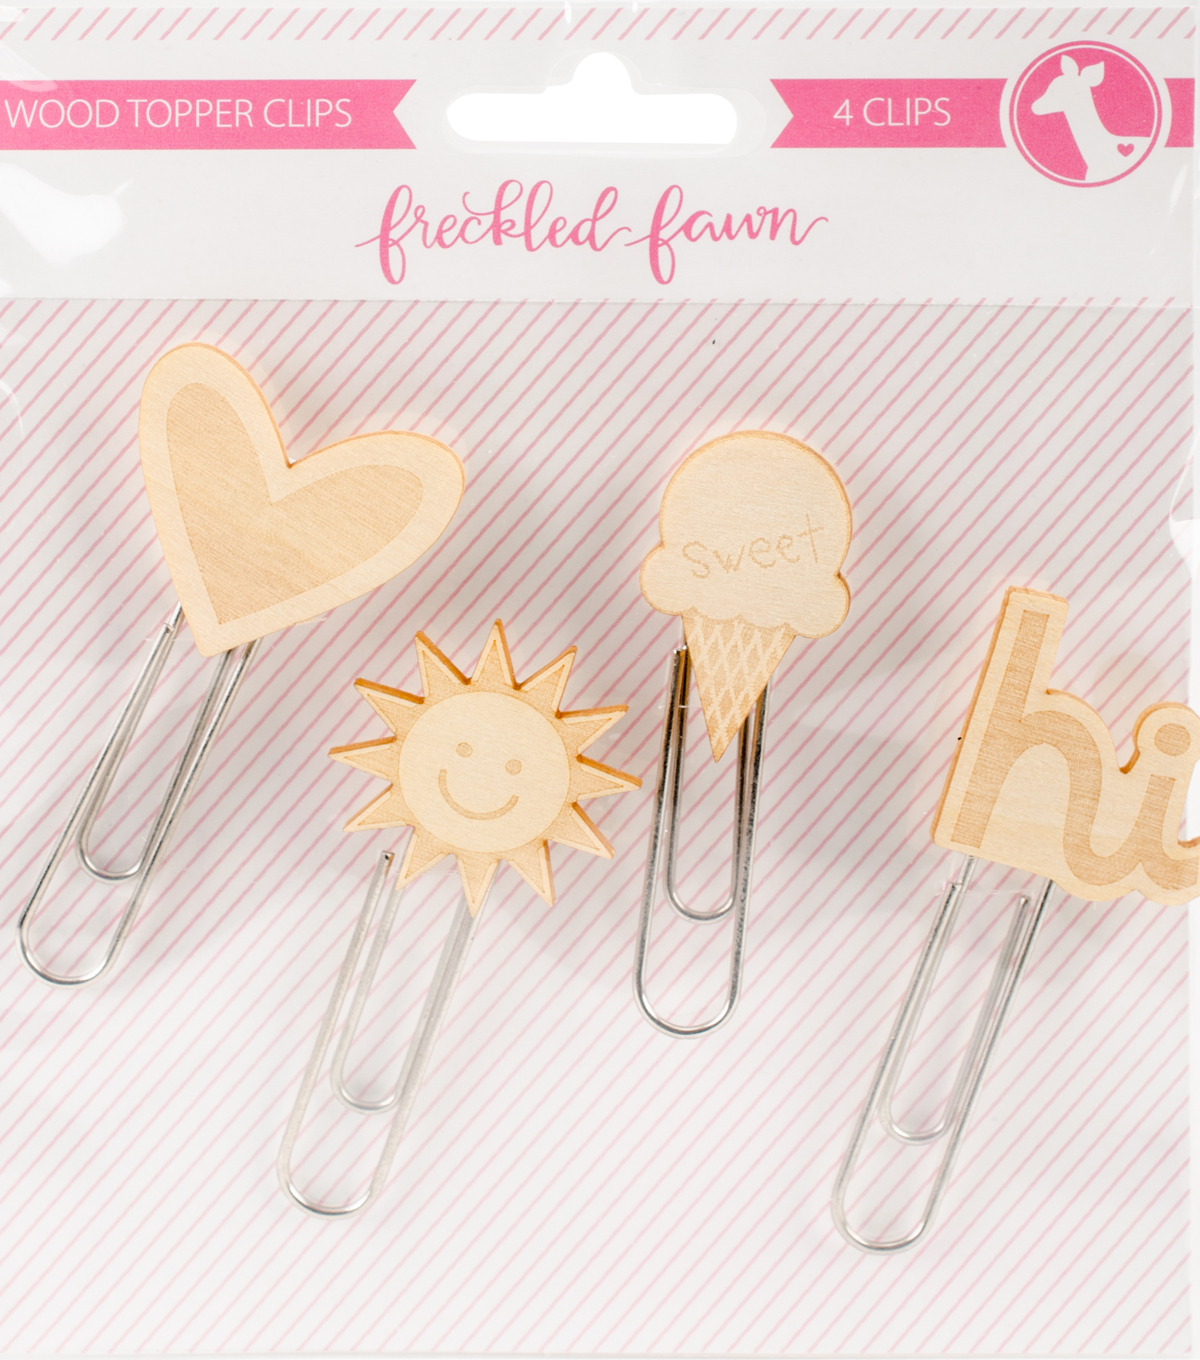 Freckled Fawn 4 pk Woodtopper Paper Clips